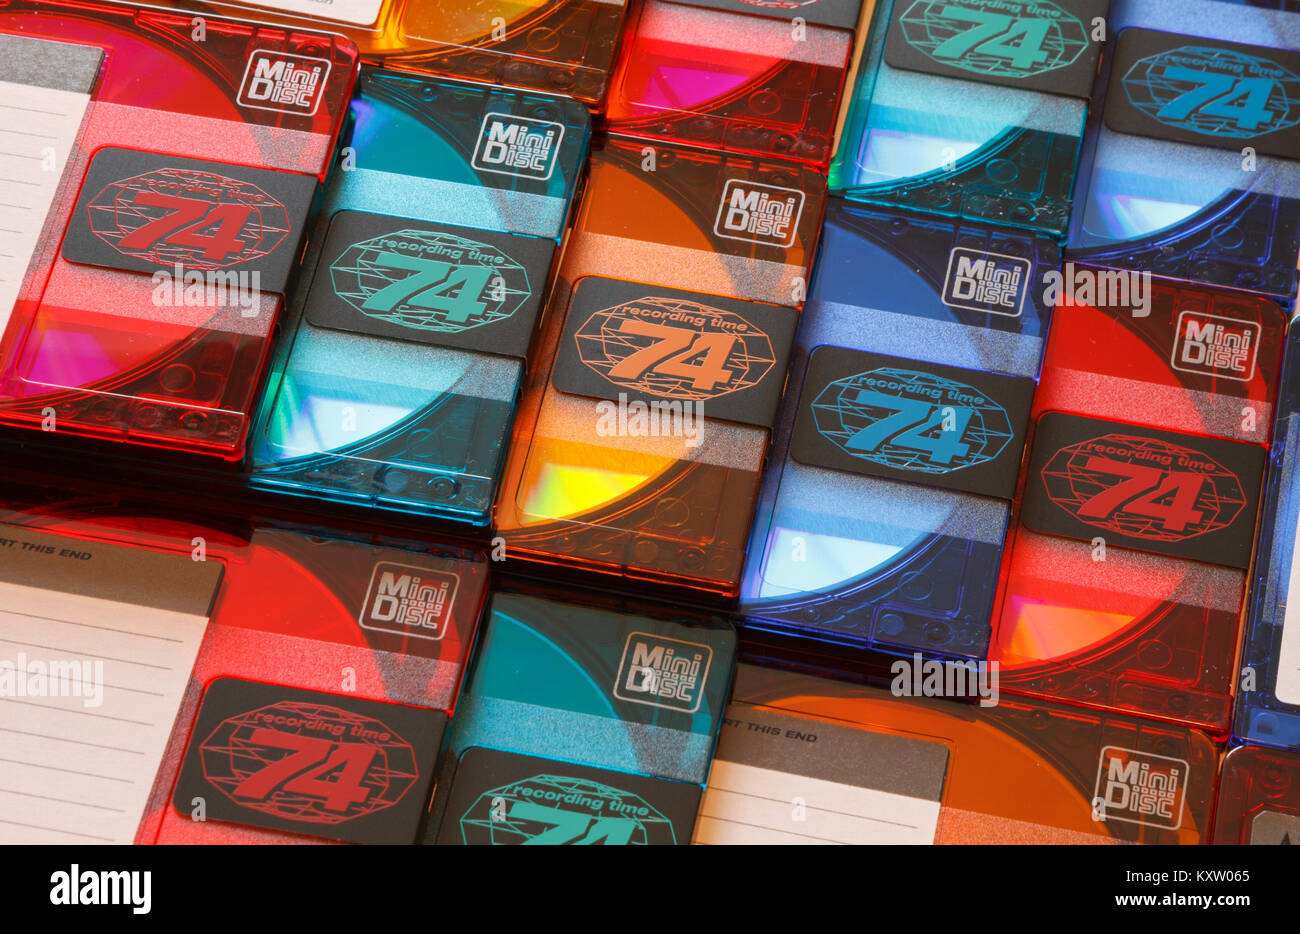 A few rows of blank colorful audio minidiscs media cartridges with a recording time of 74 minutes each. - Stock Image